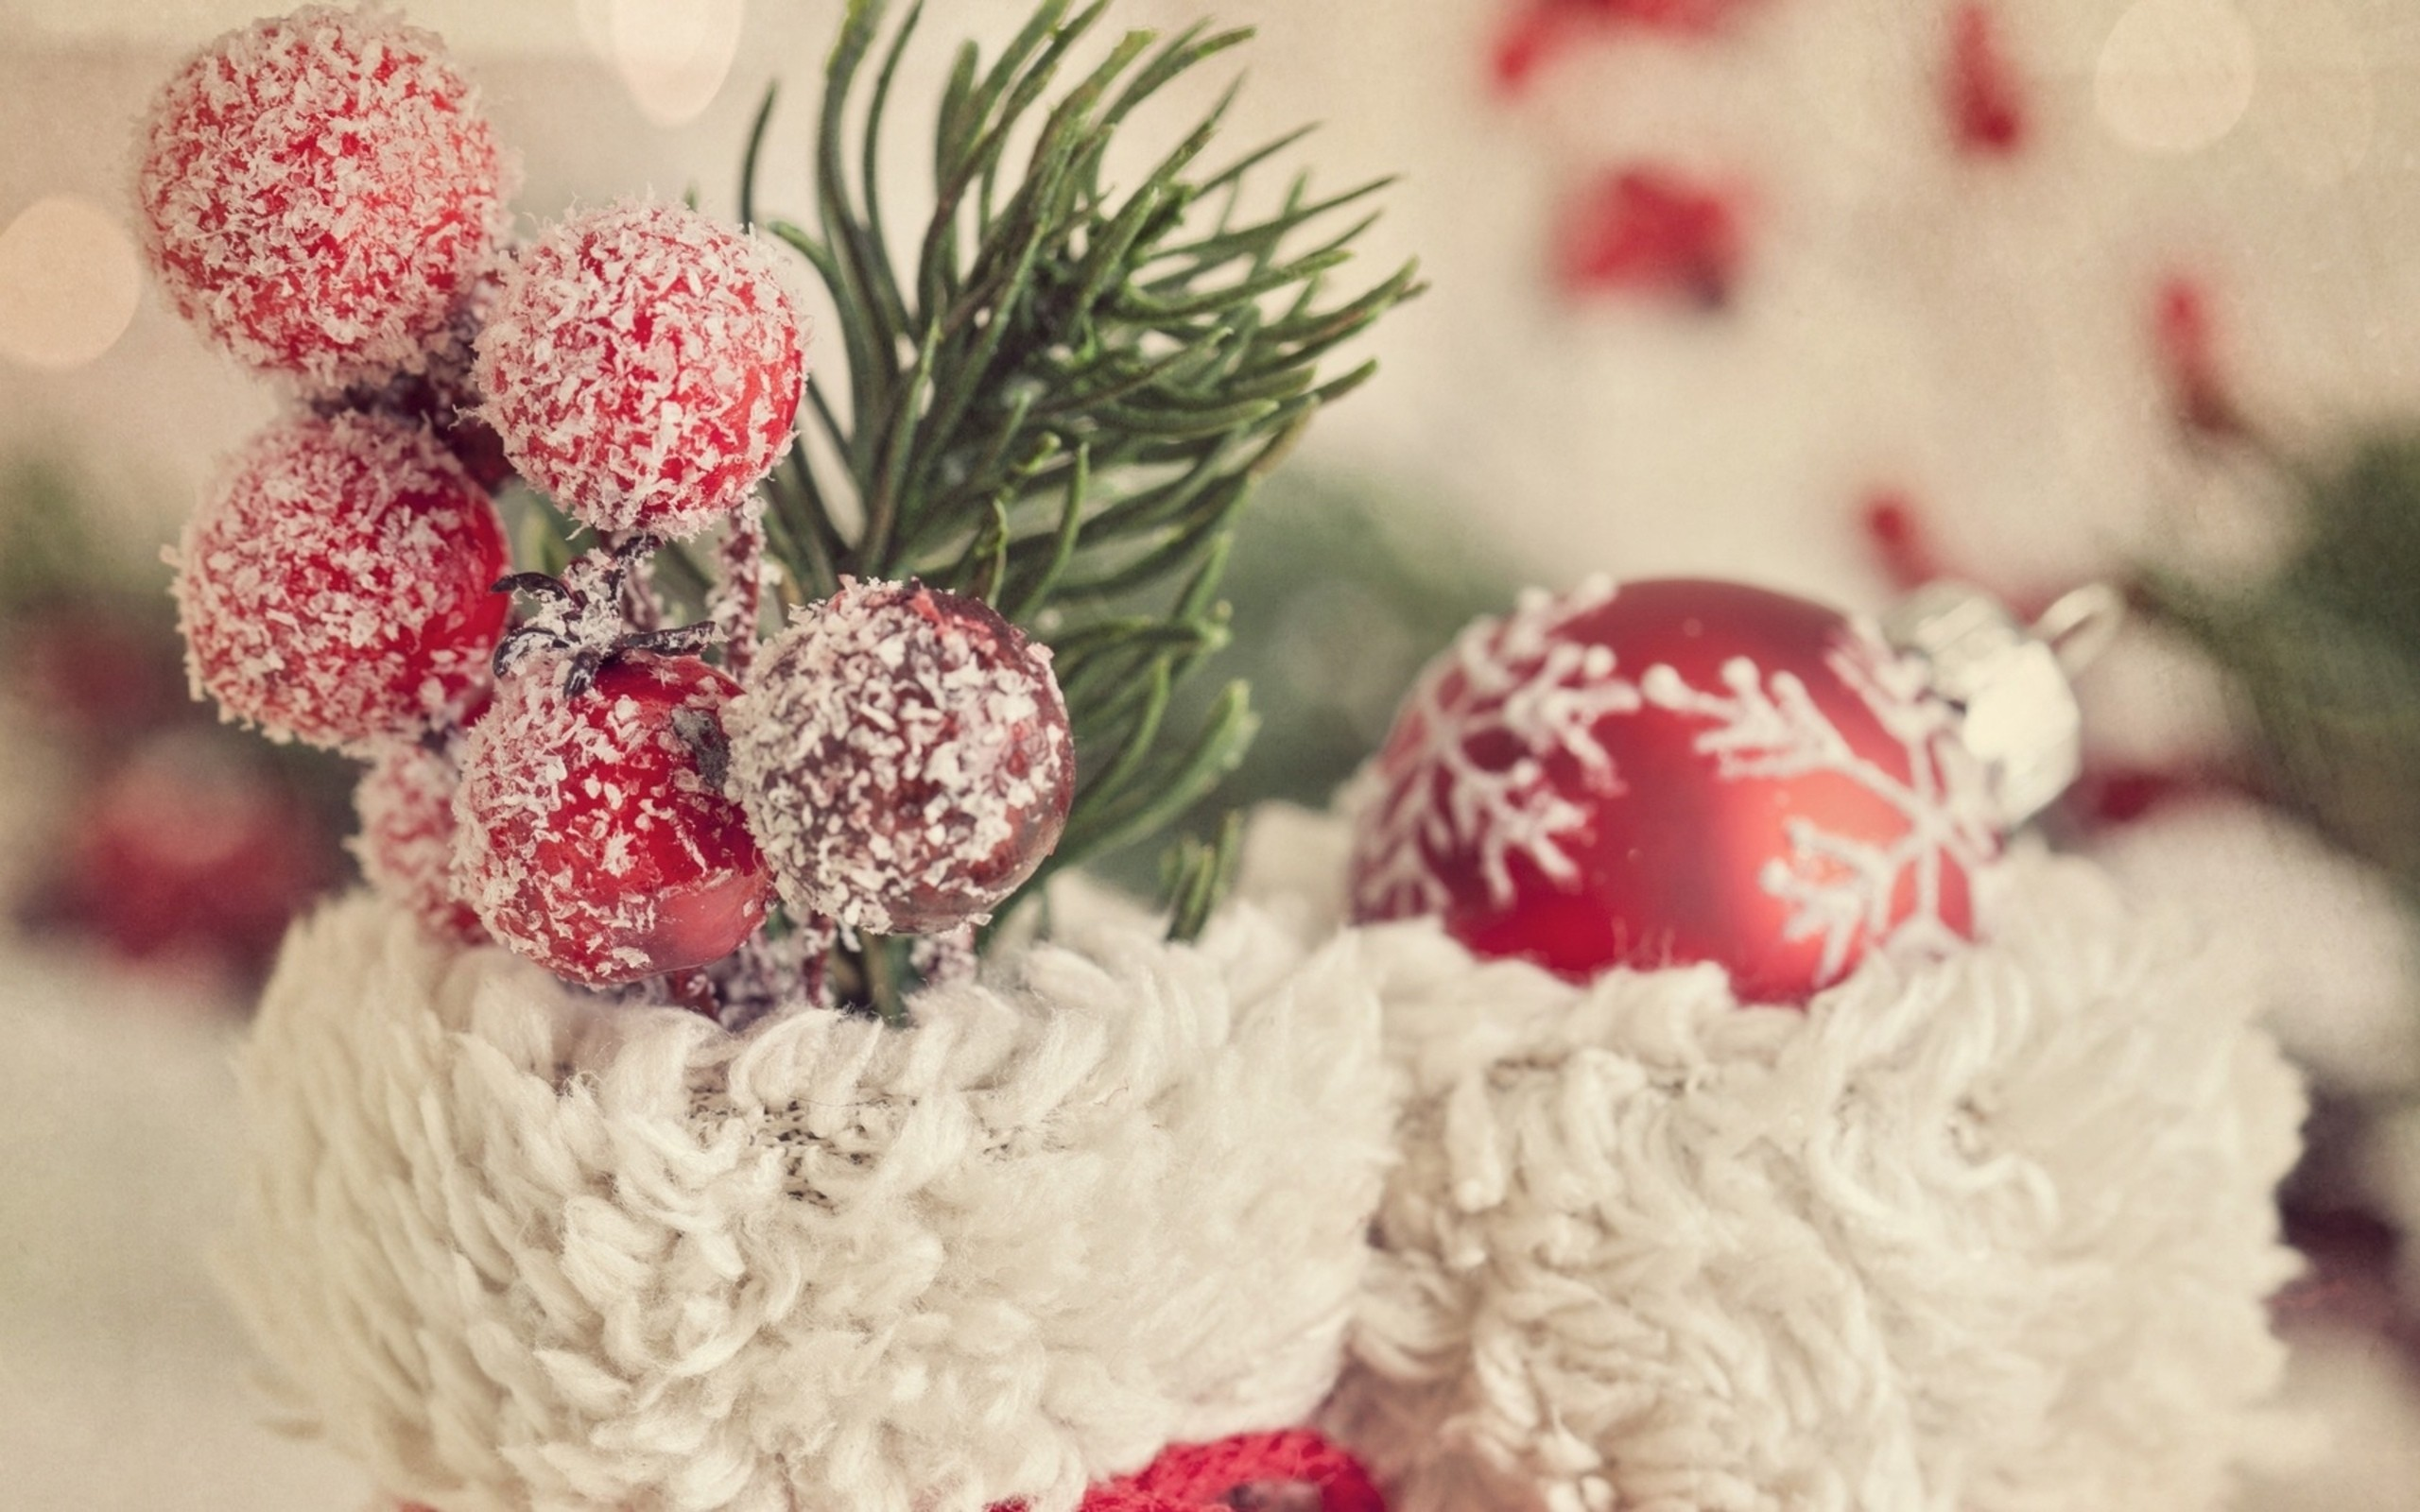 Christmas tree decorations from food wallpapers and images 2560x1600